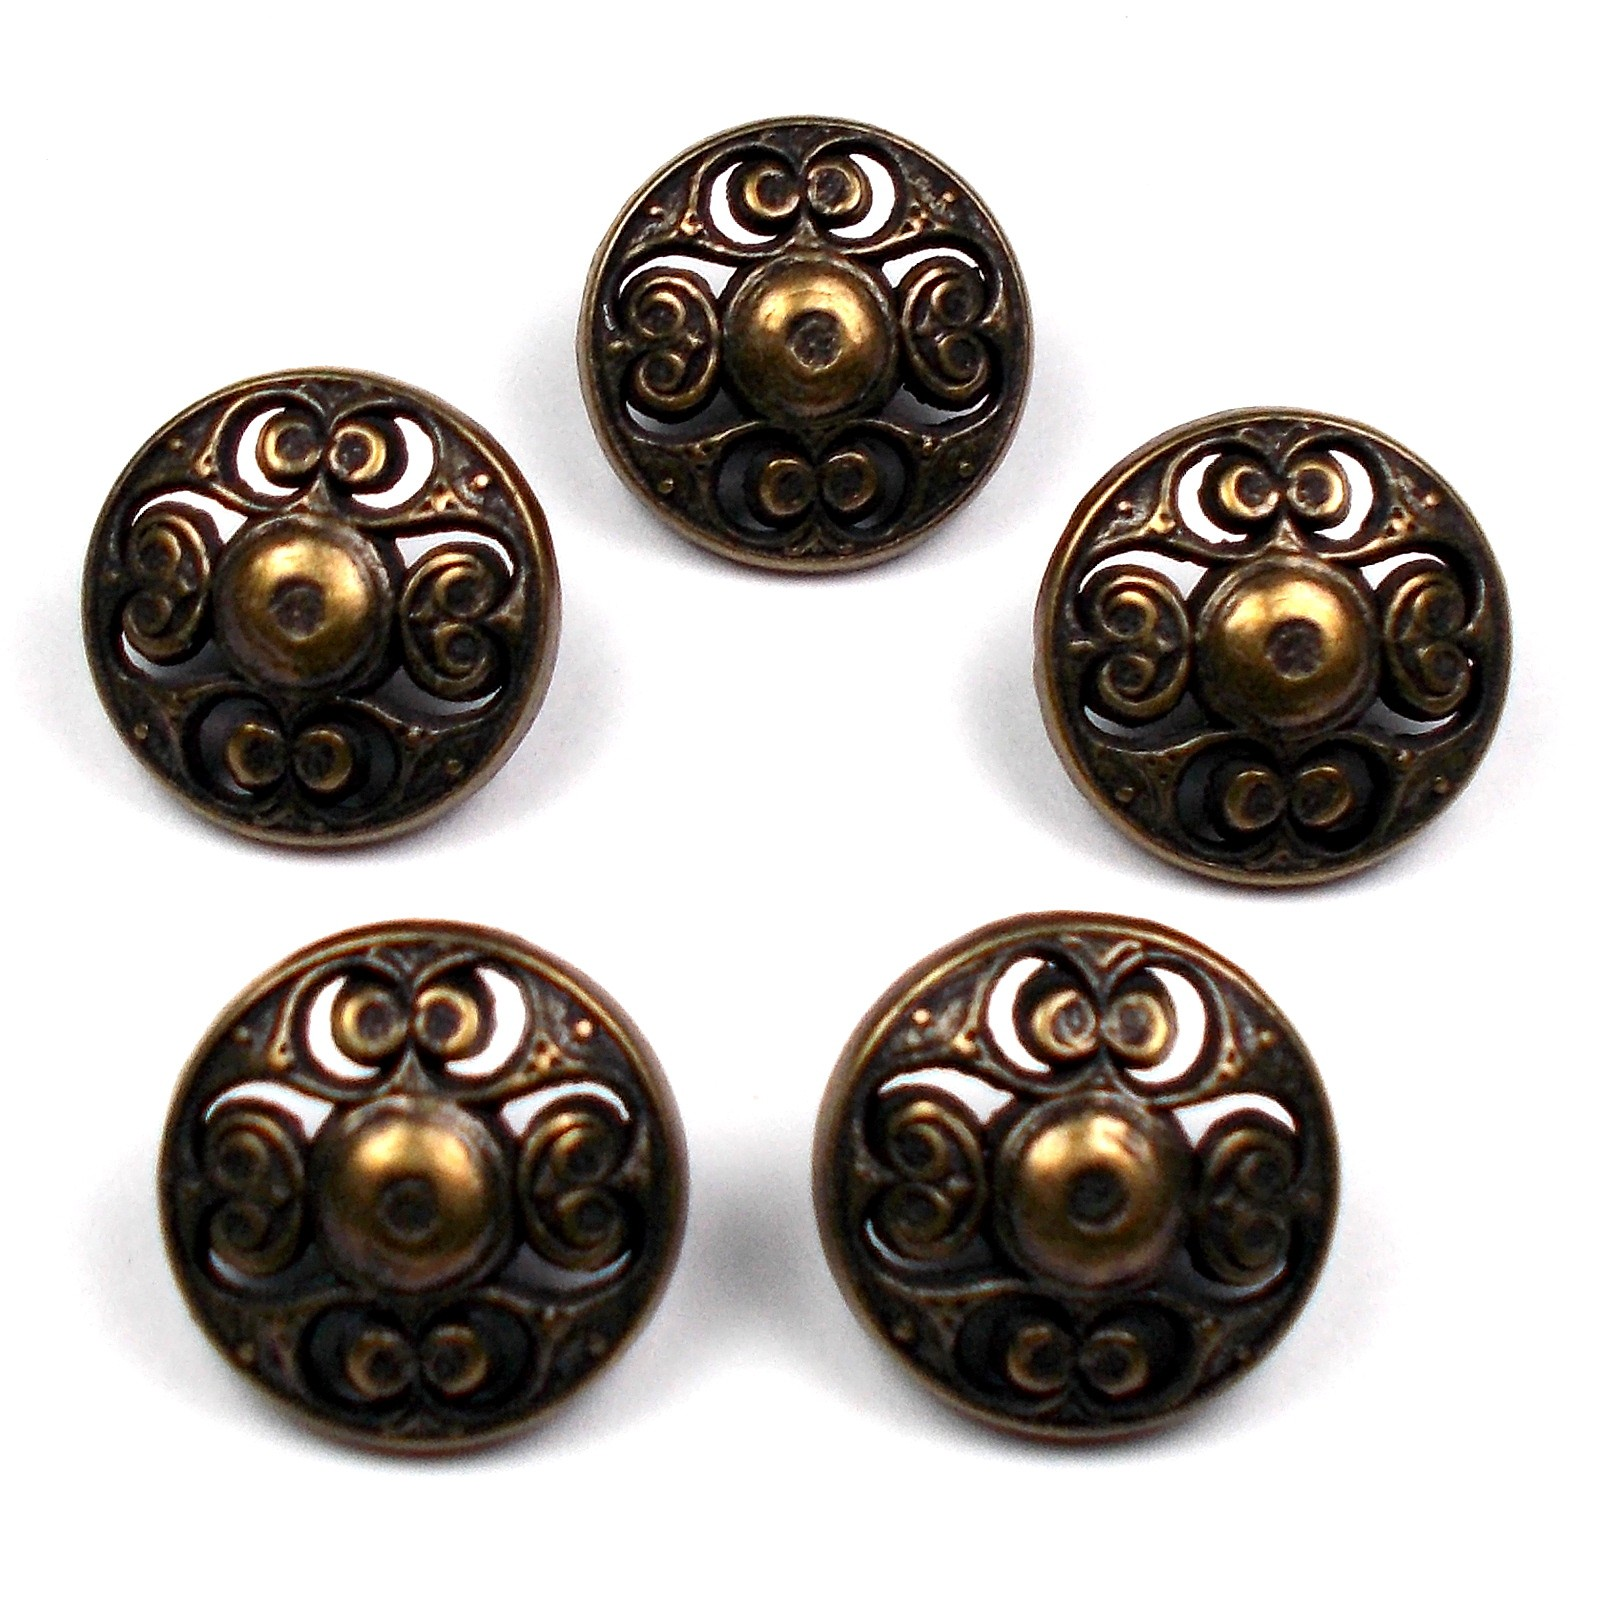 Vintage Style Metal Filigree Buttons 22mm Bronze Pack of 5